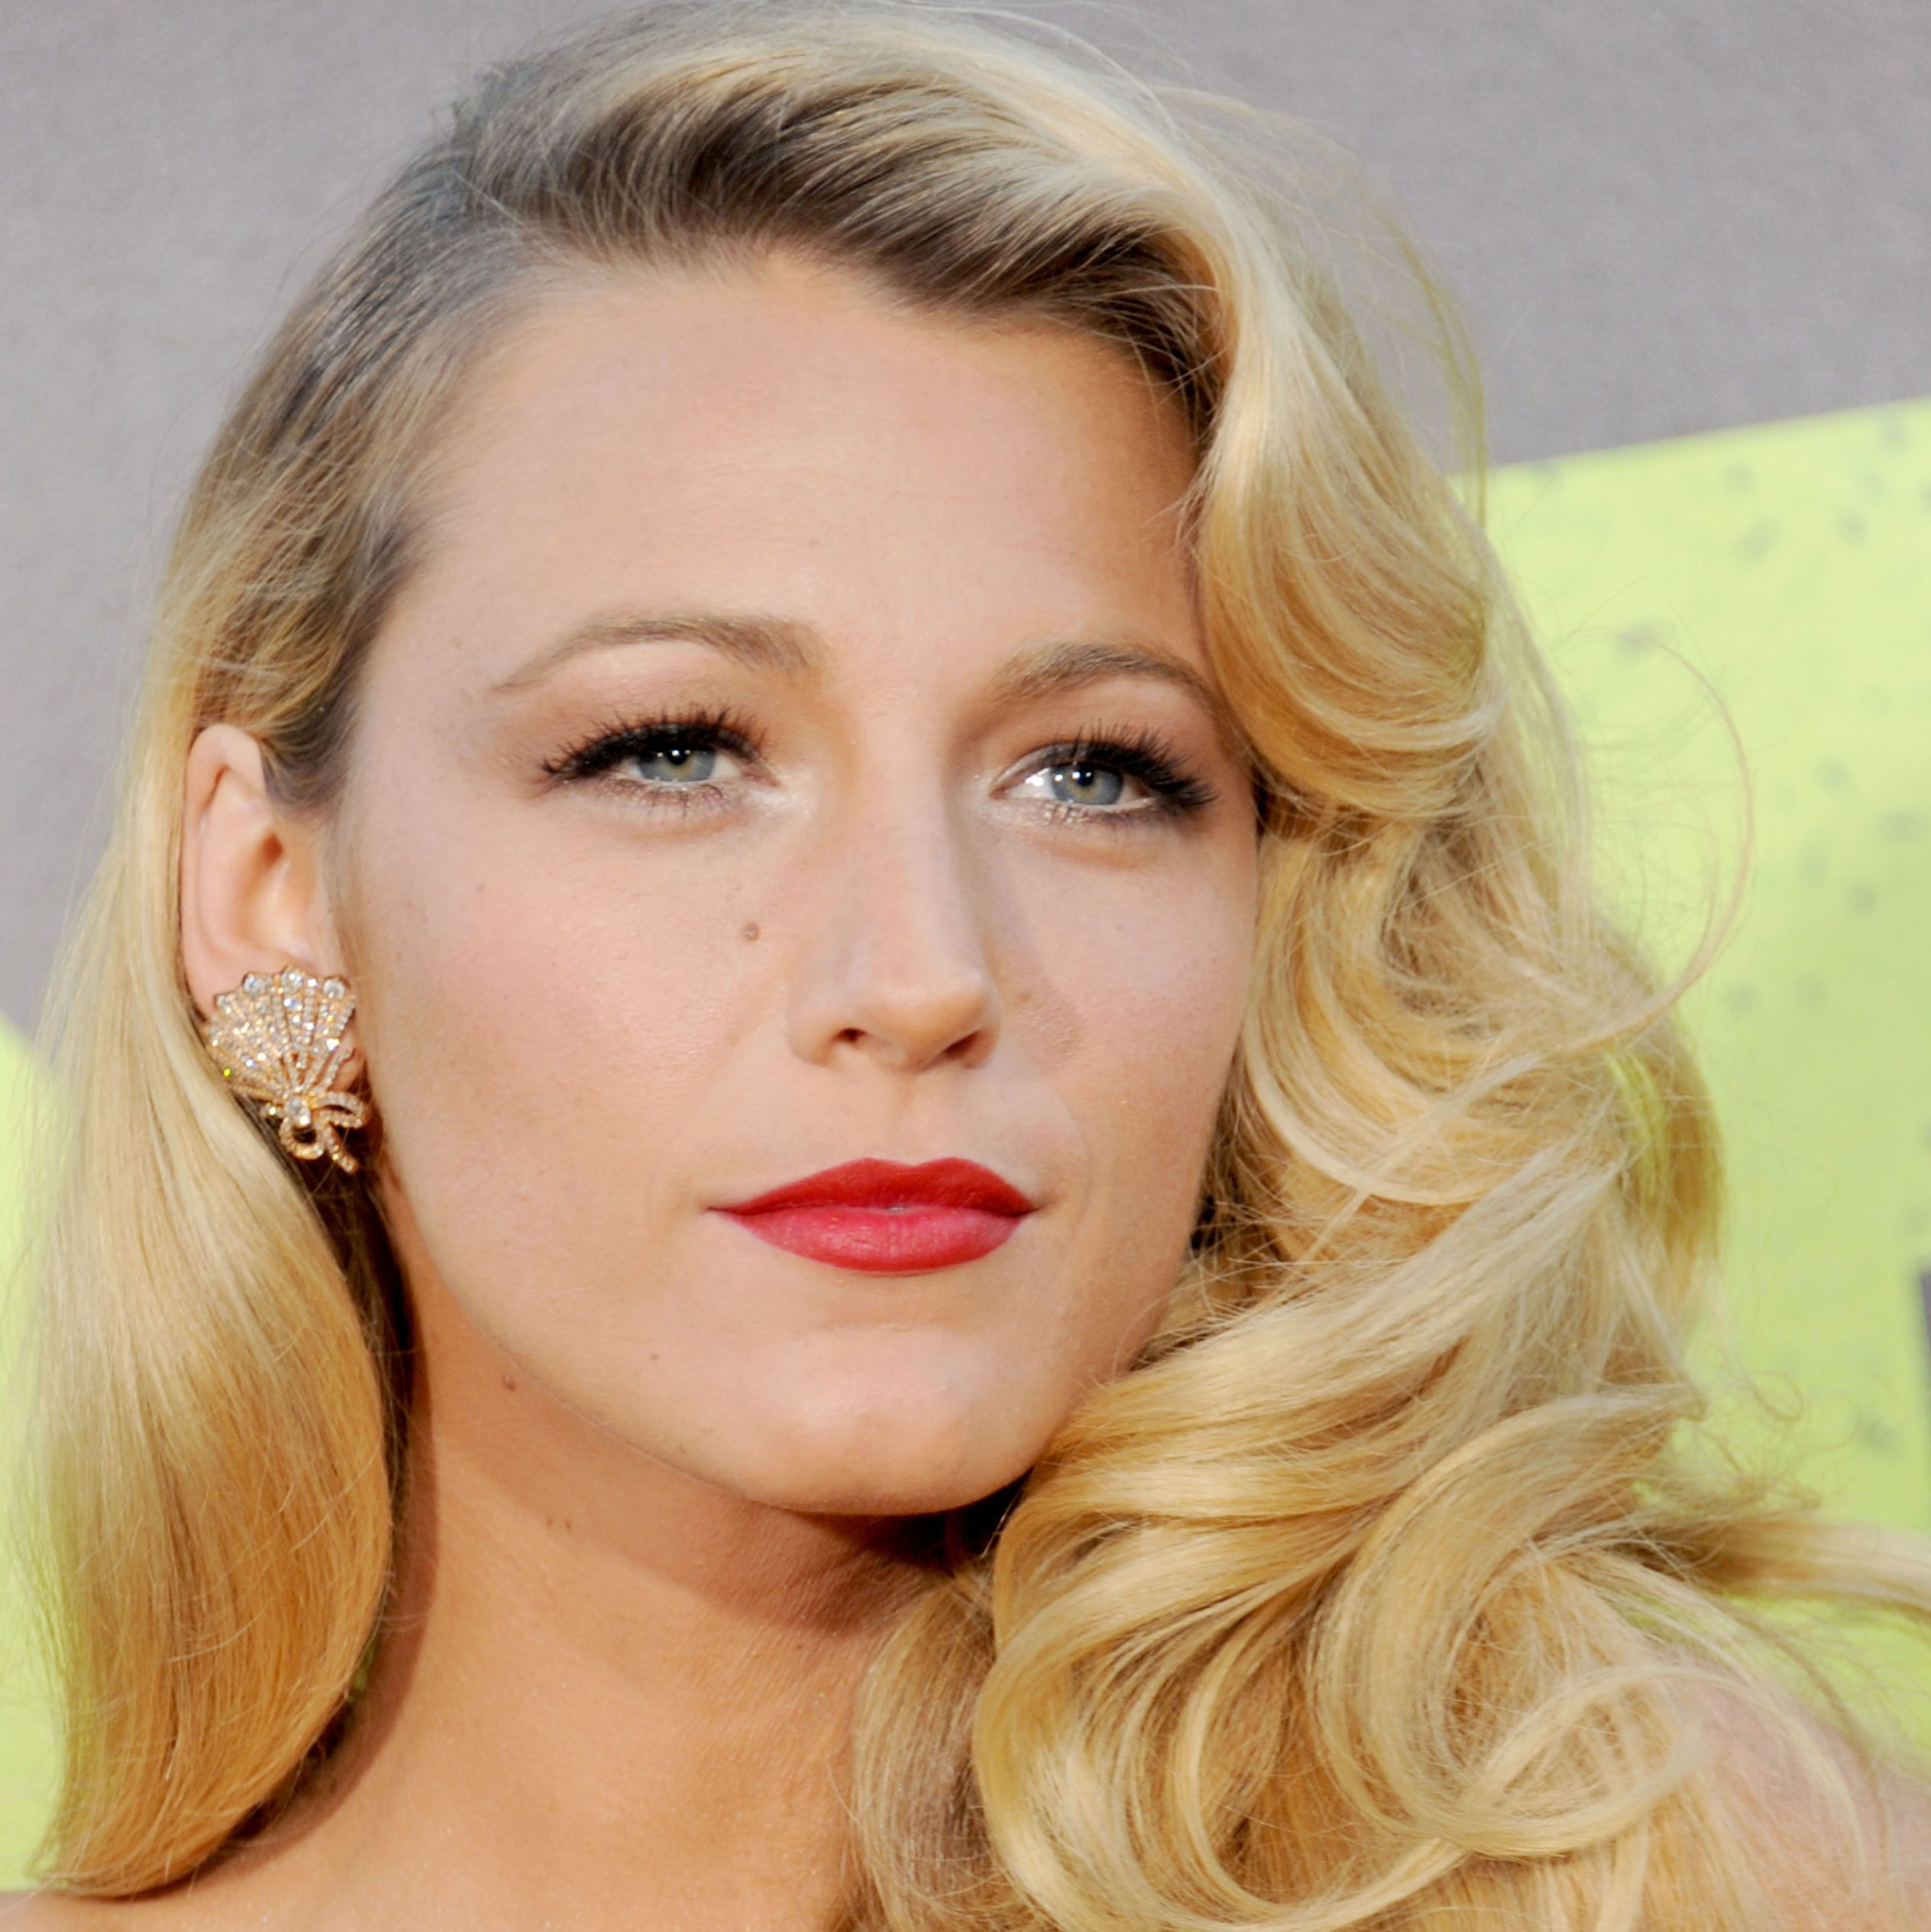 Blake Lively - 11 celebrities with gorgeous beauty spots